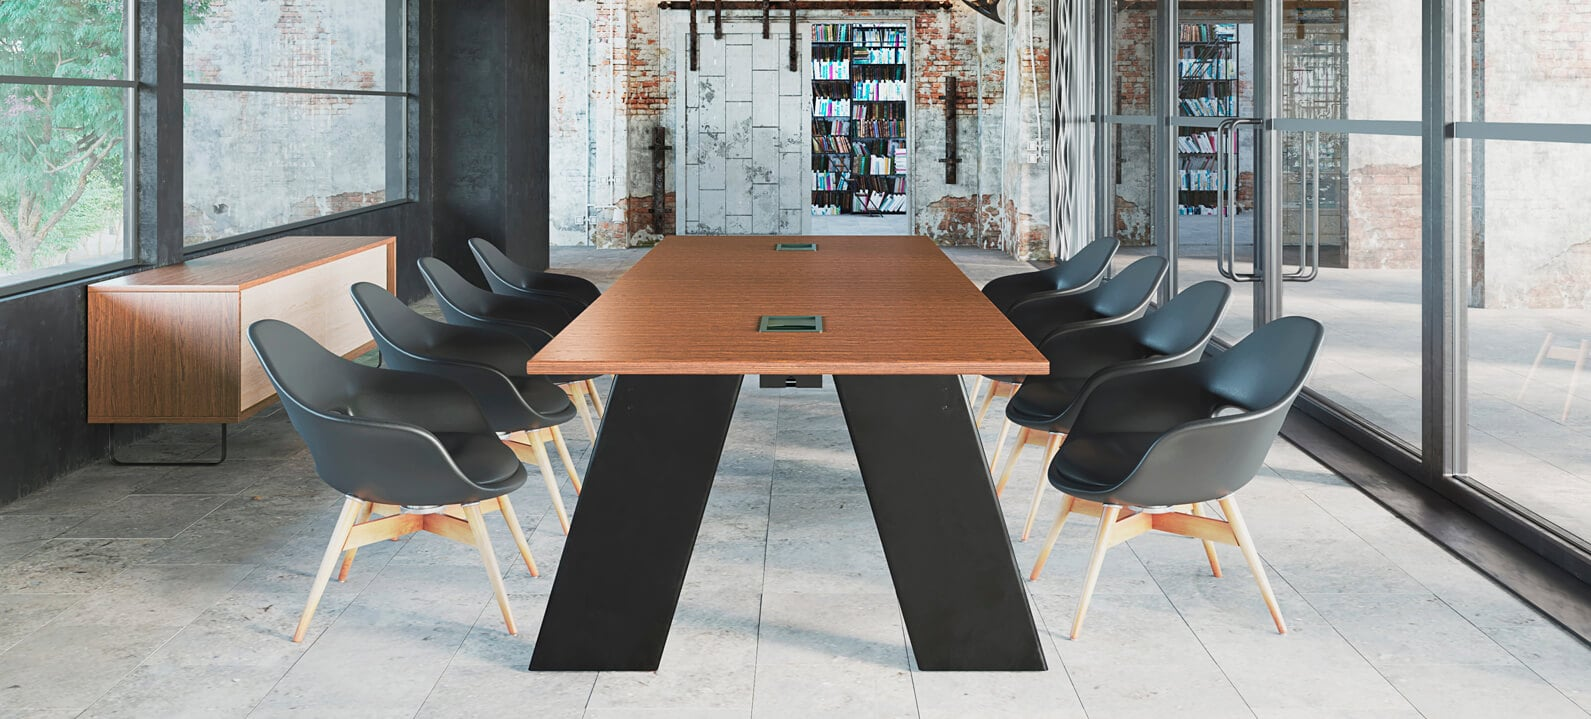 Conference Table Designs 10